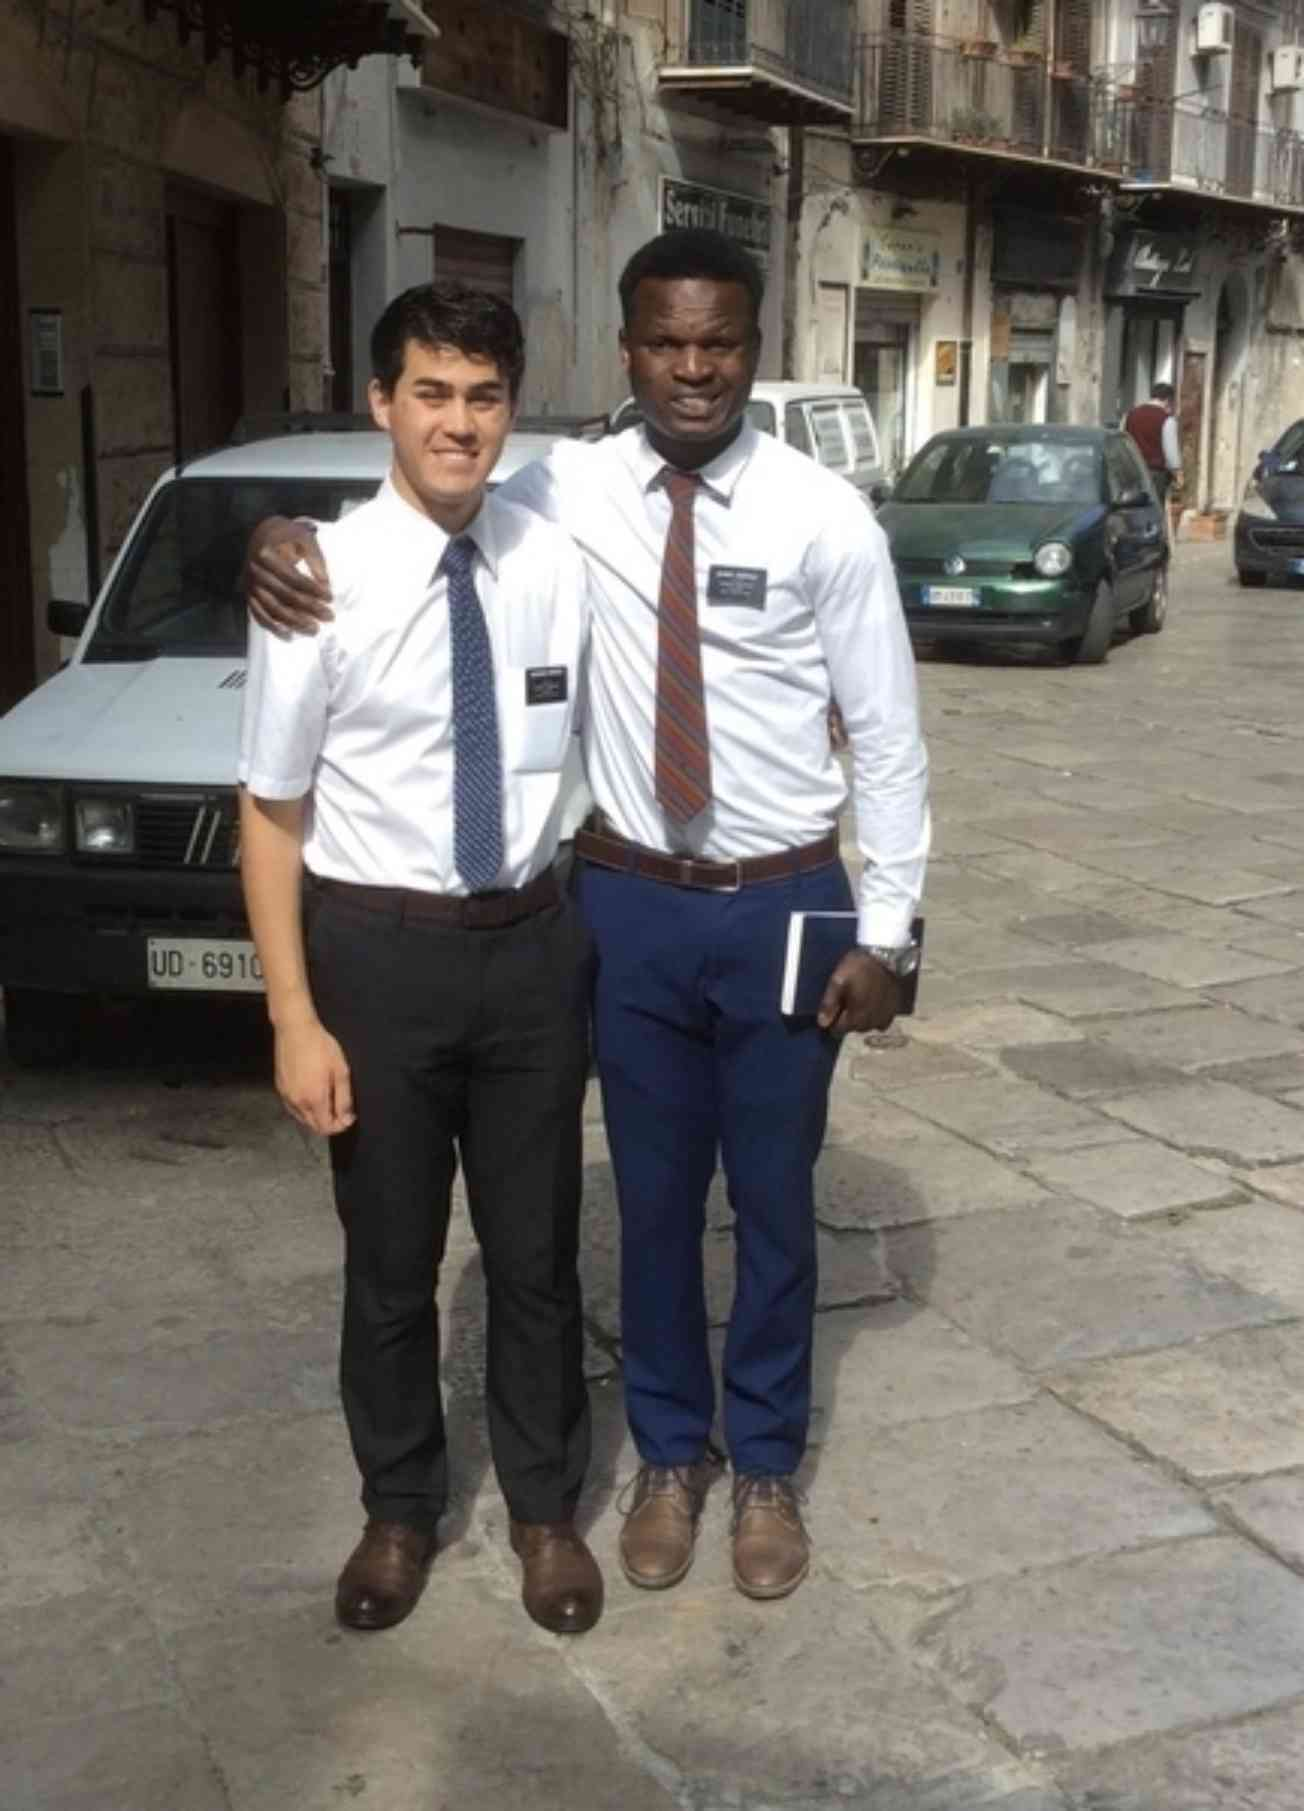 Bolaji With His Mission Companion In Italy